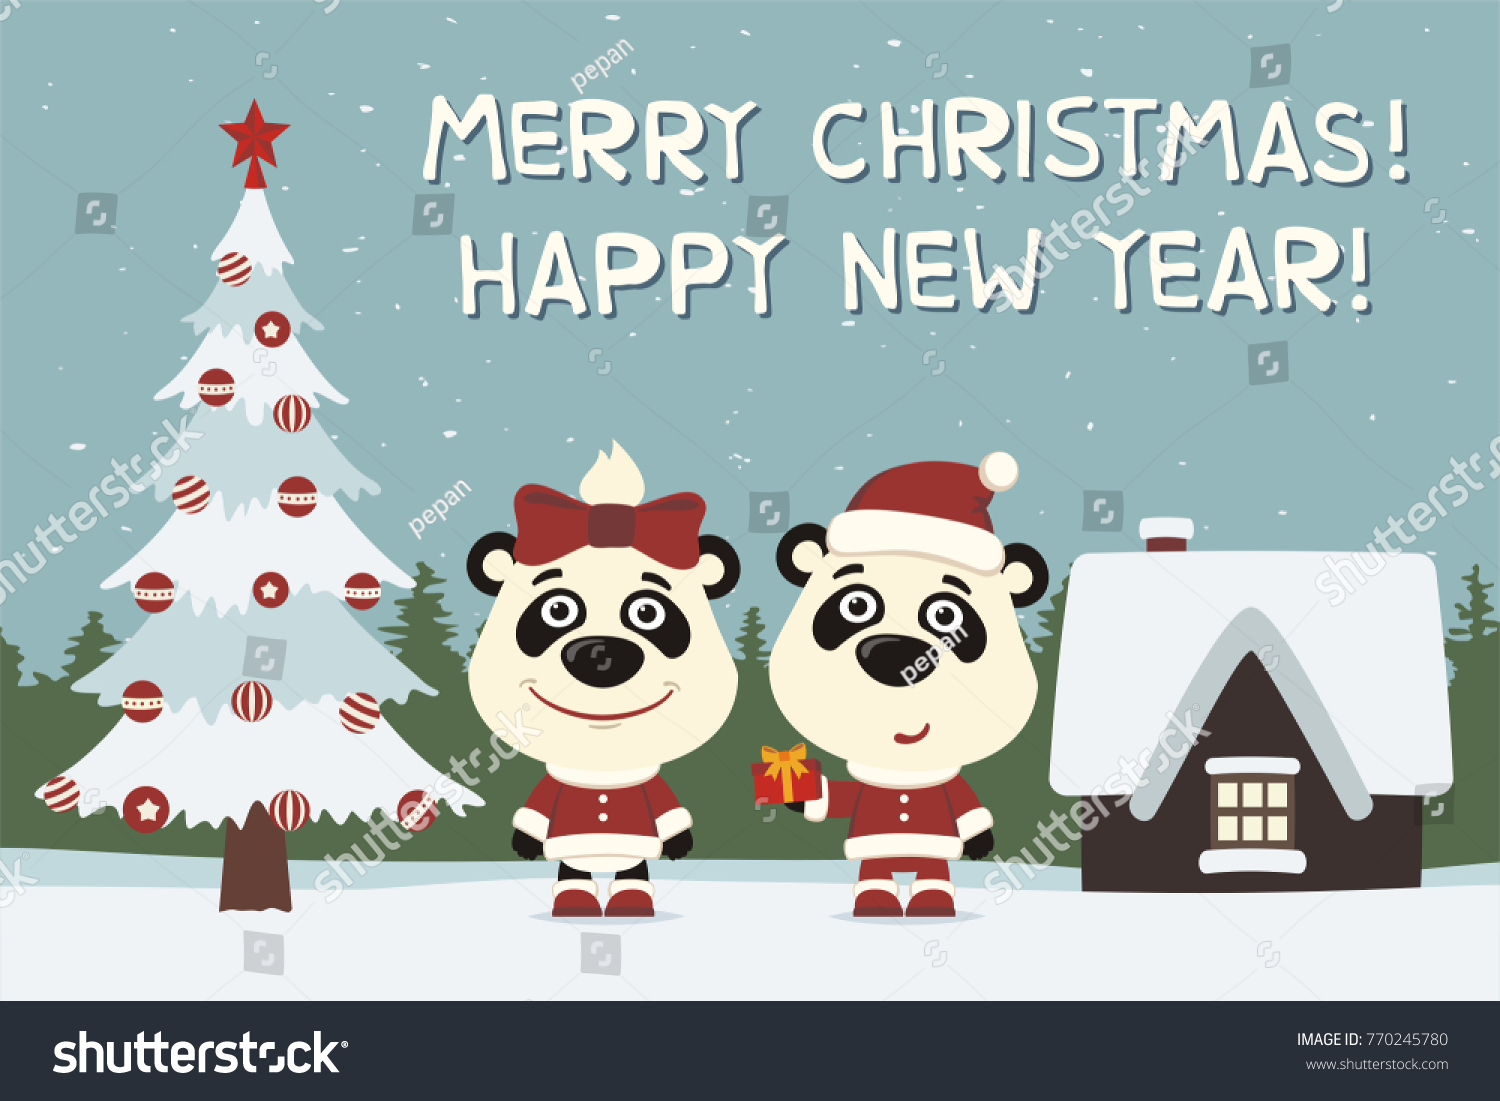 Merry Christmas And Happy New Year Greeting Card Two Raccoons Boy